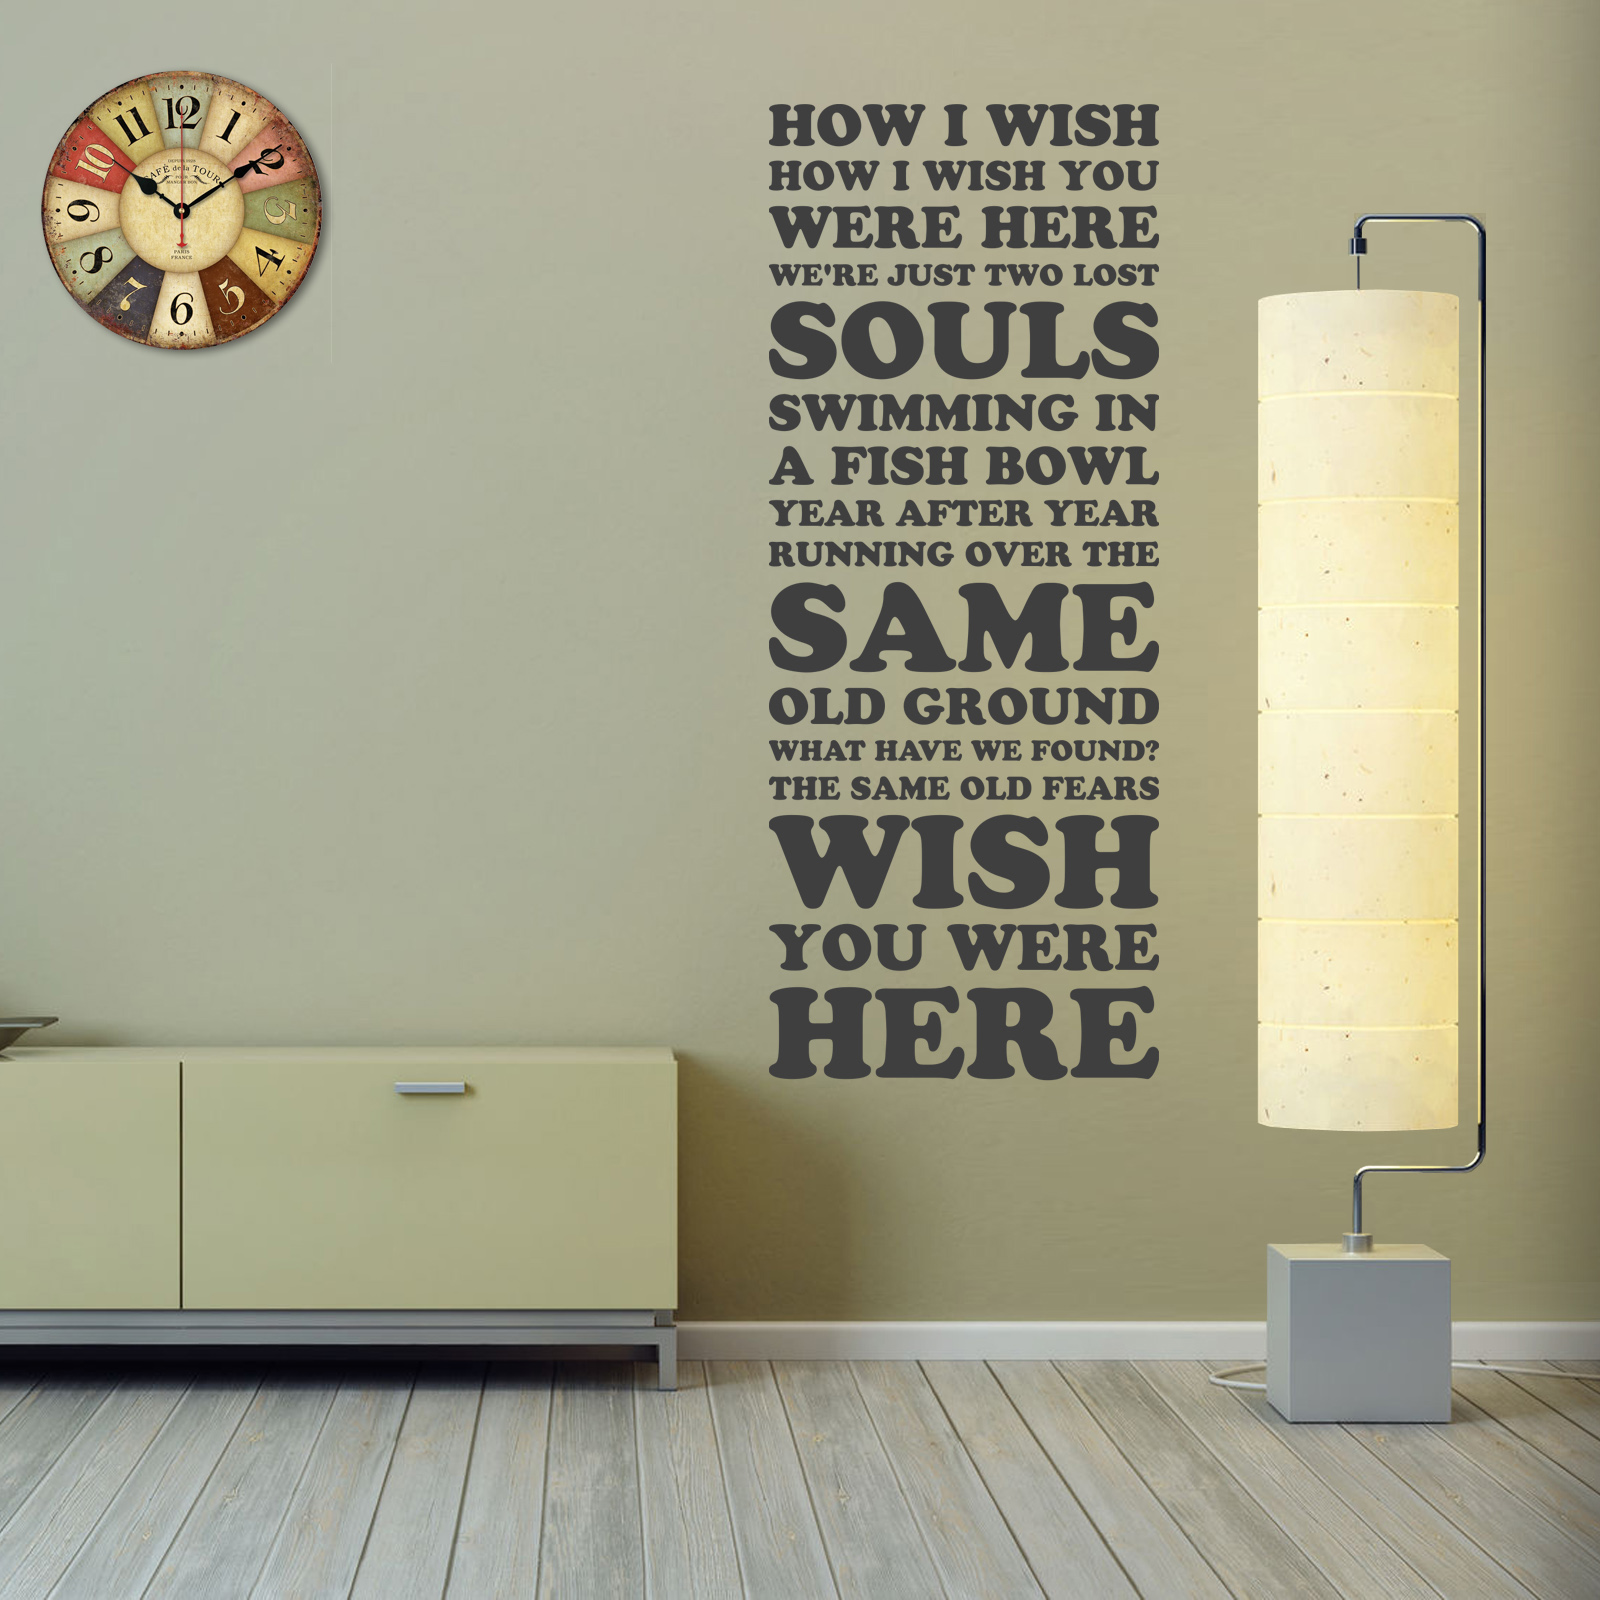 Pink Floyd Wish You Were Here Song Lyrics Two Lost Souls Vinyl Wall